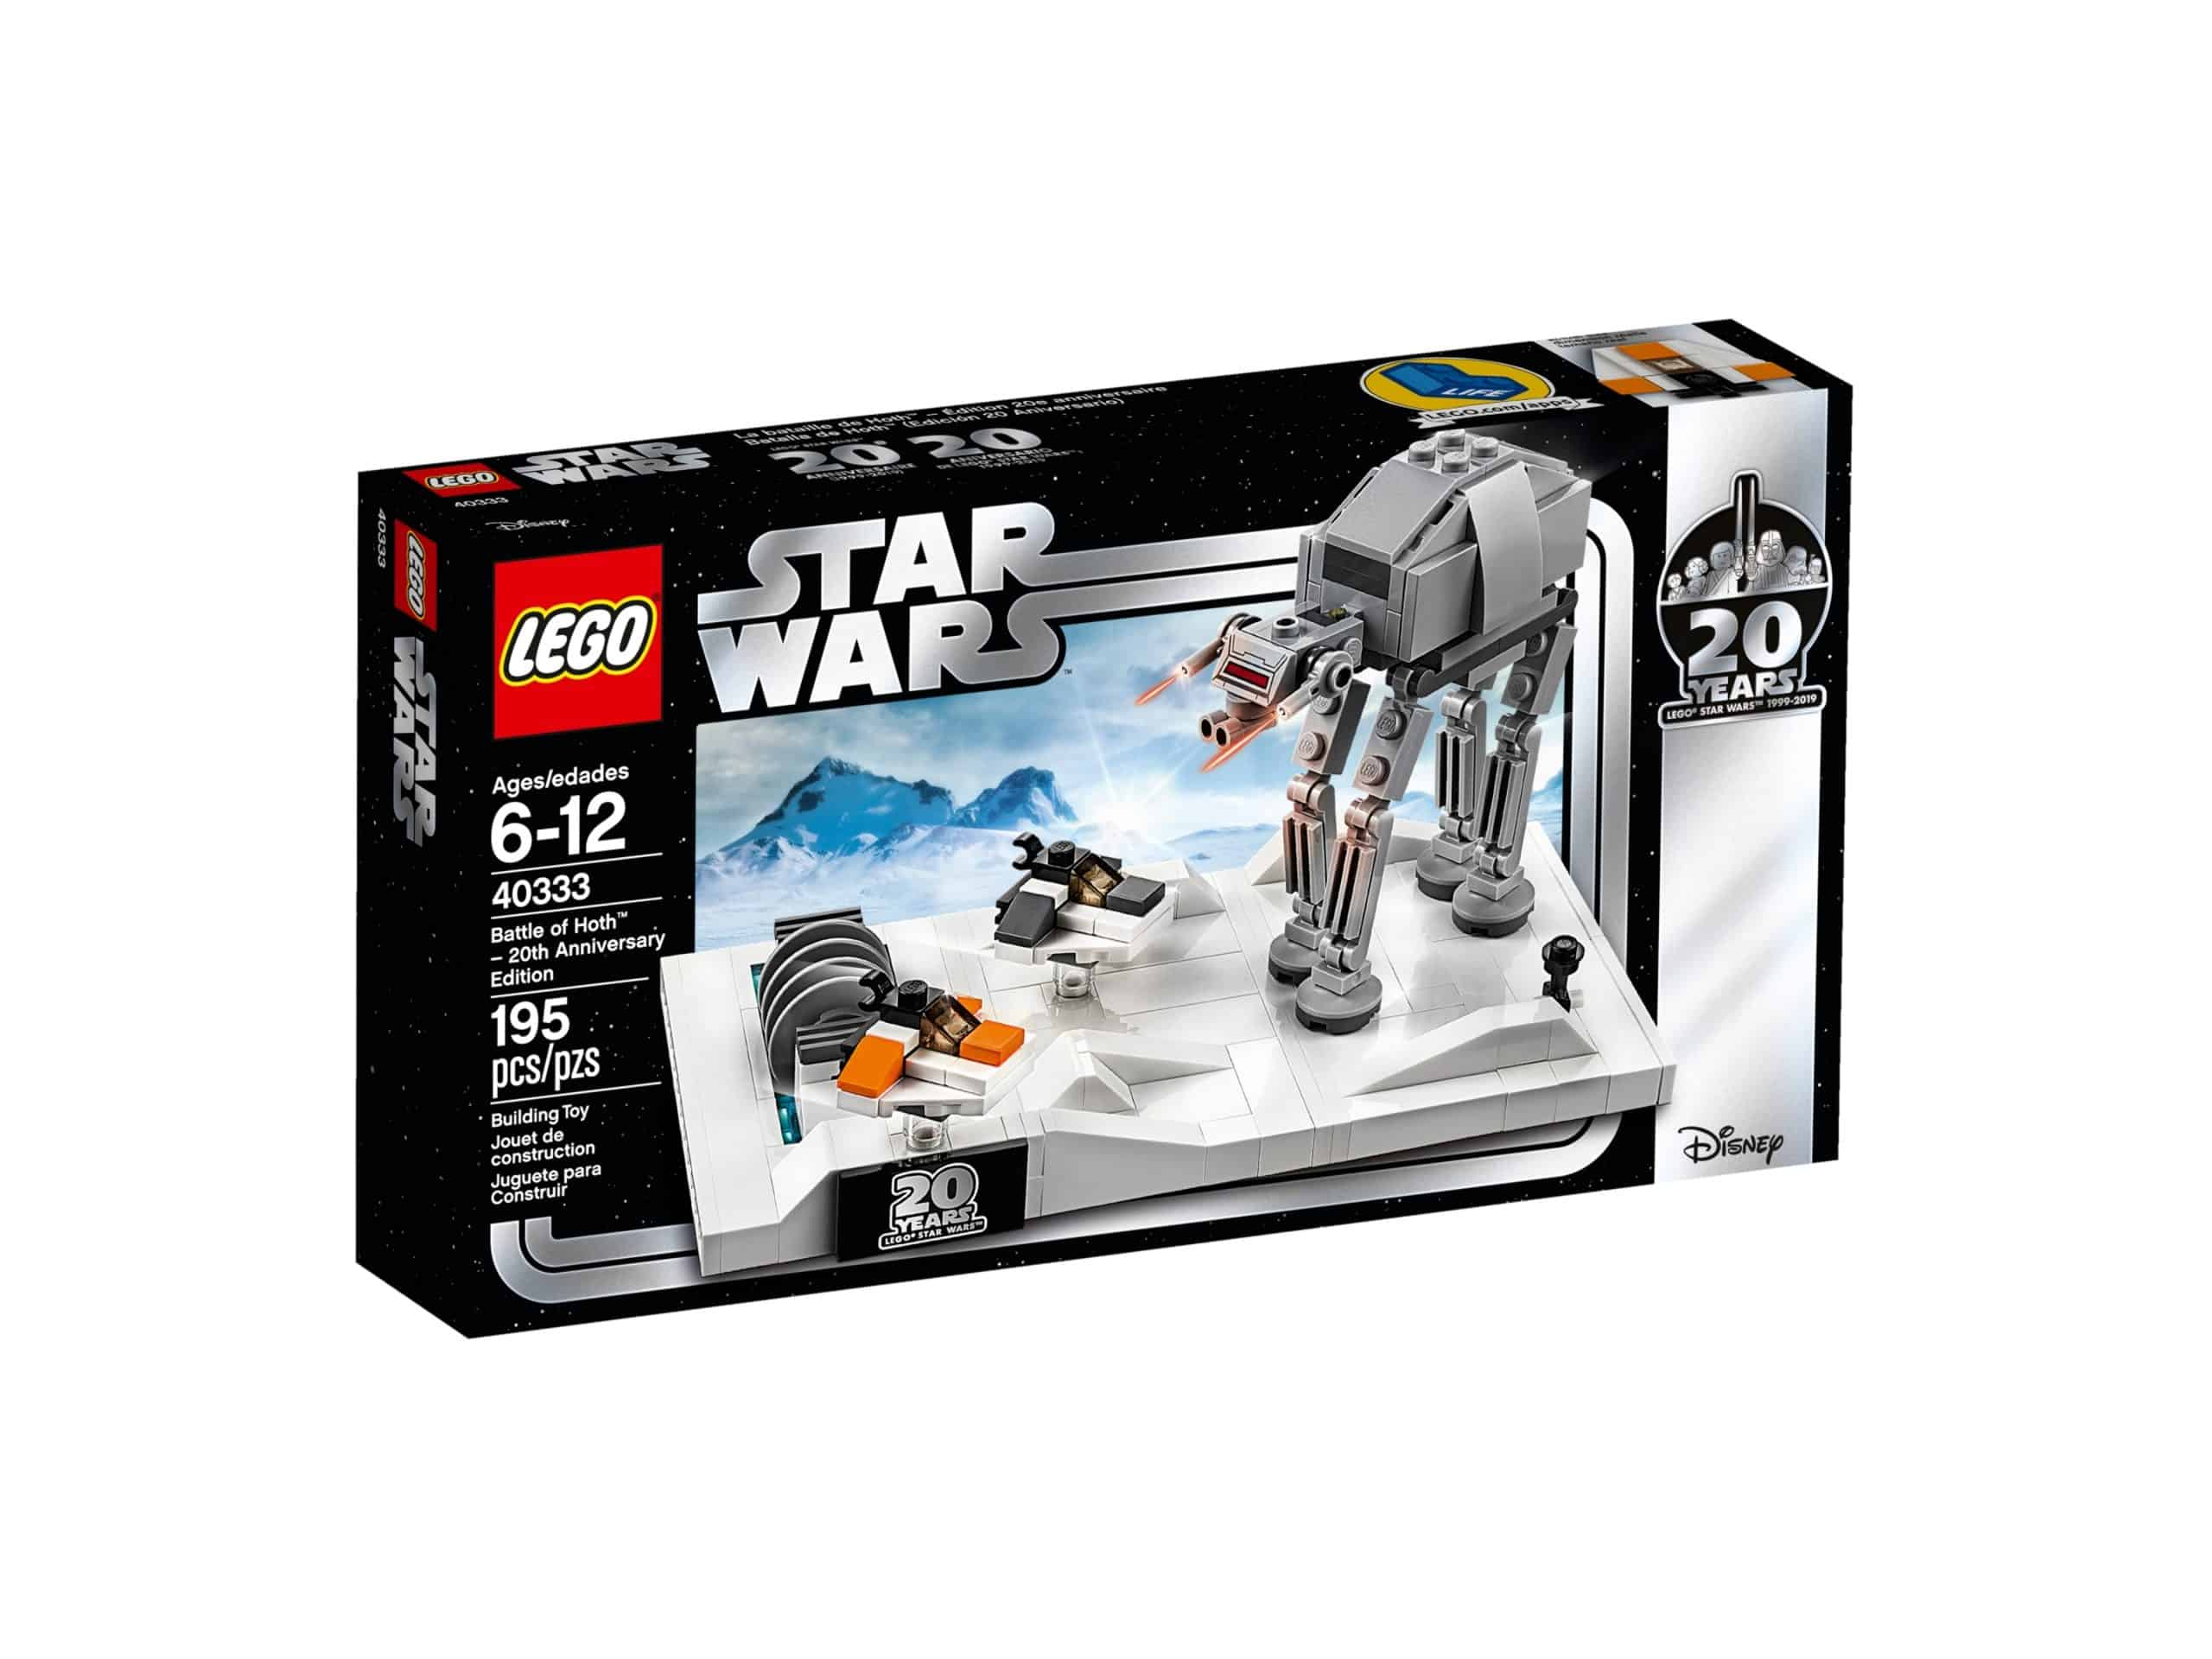 lego 40333 battle of hoth micro build scaled